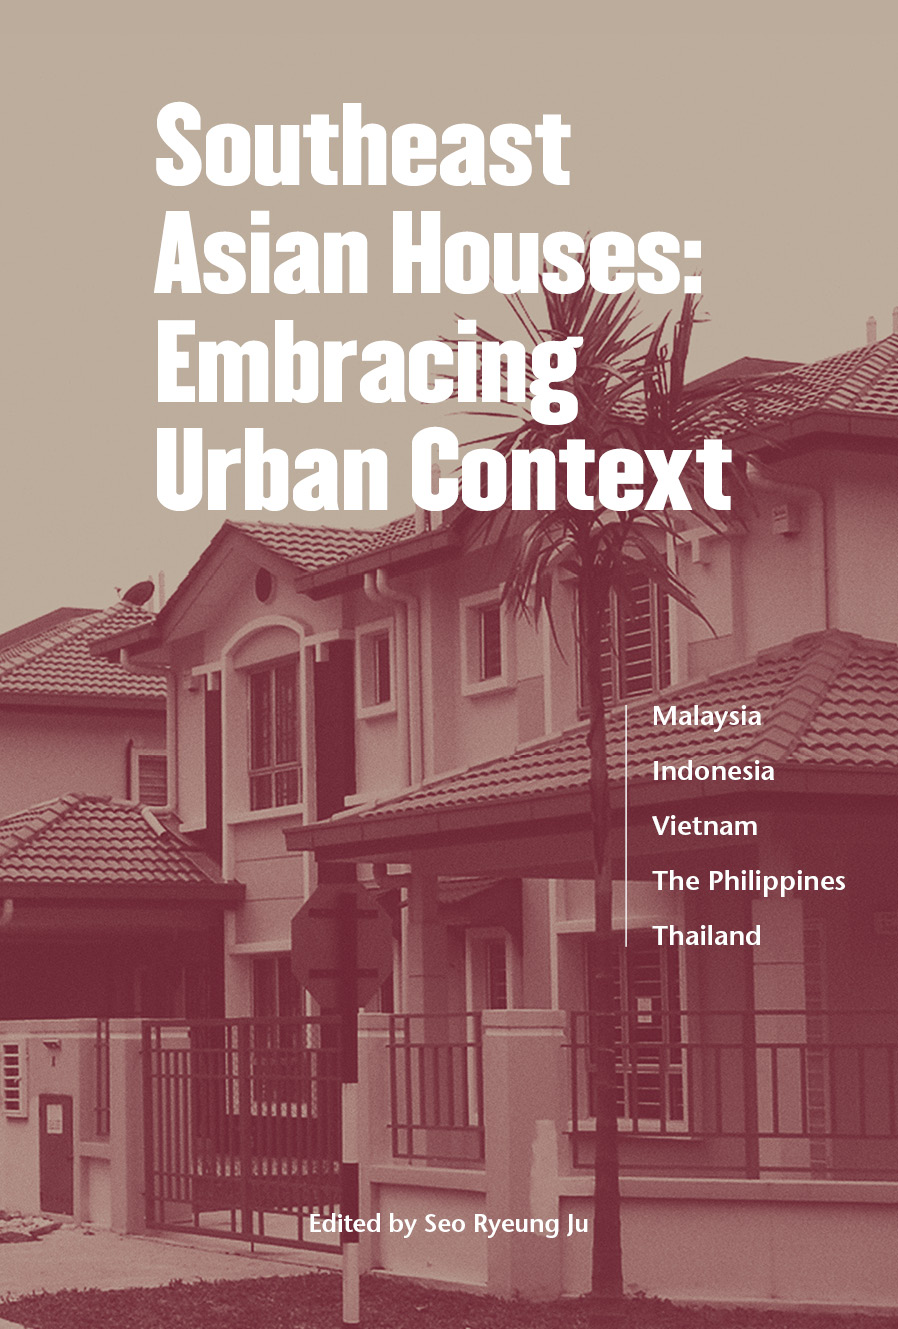 Southeast Asian Houses: Embracing Urban Context